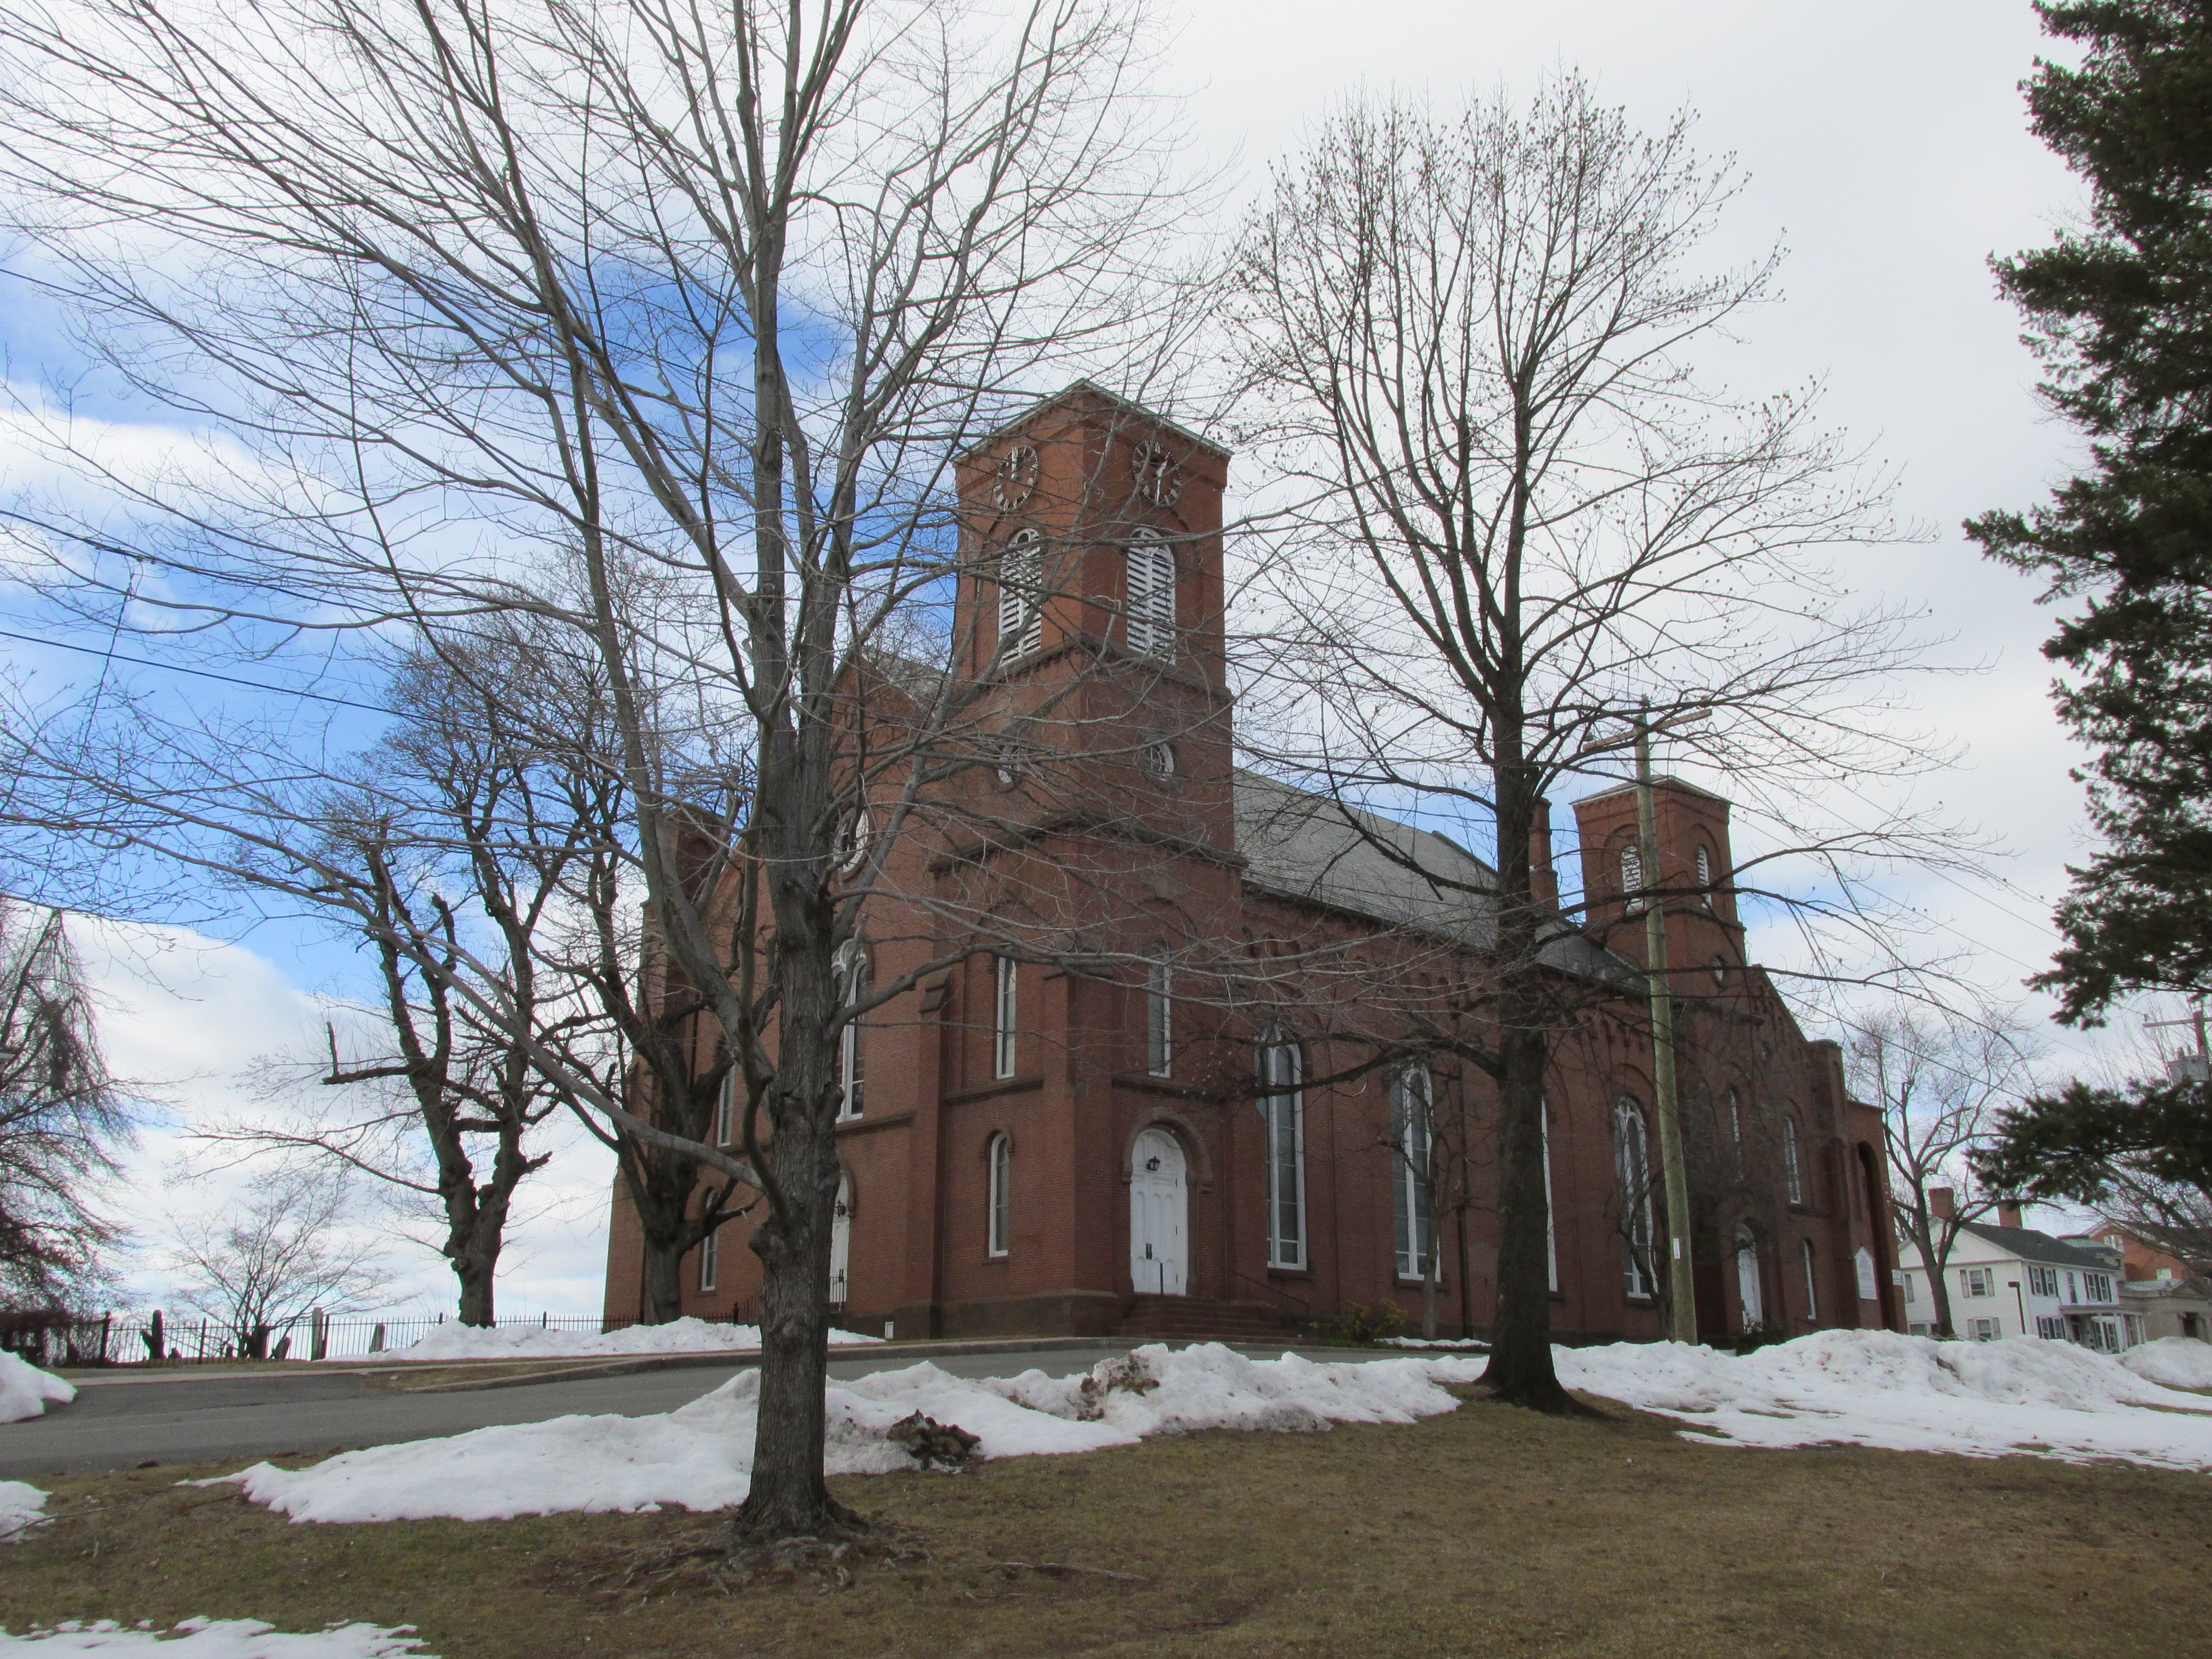 Charming The First Church In History #2: First_Church_of_Christ_Congregational%2C_Suffield_CT.jpg